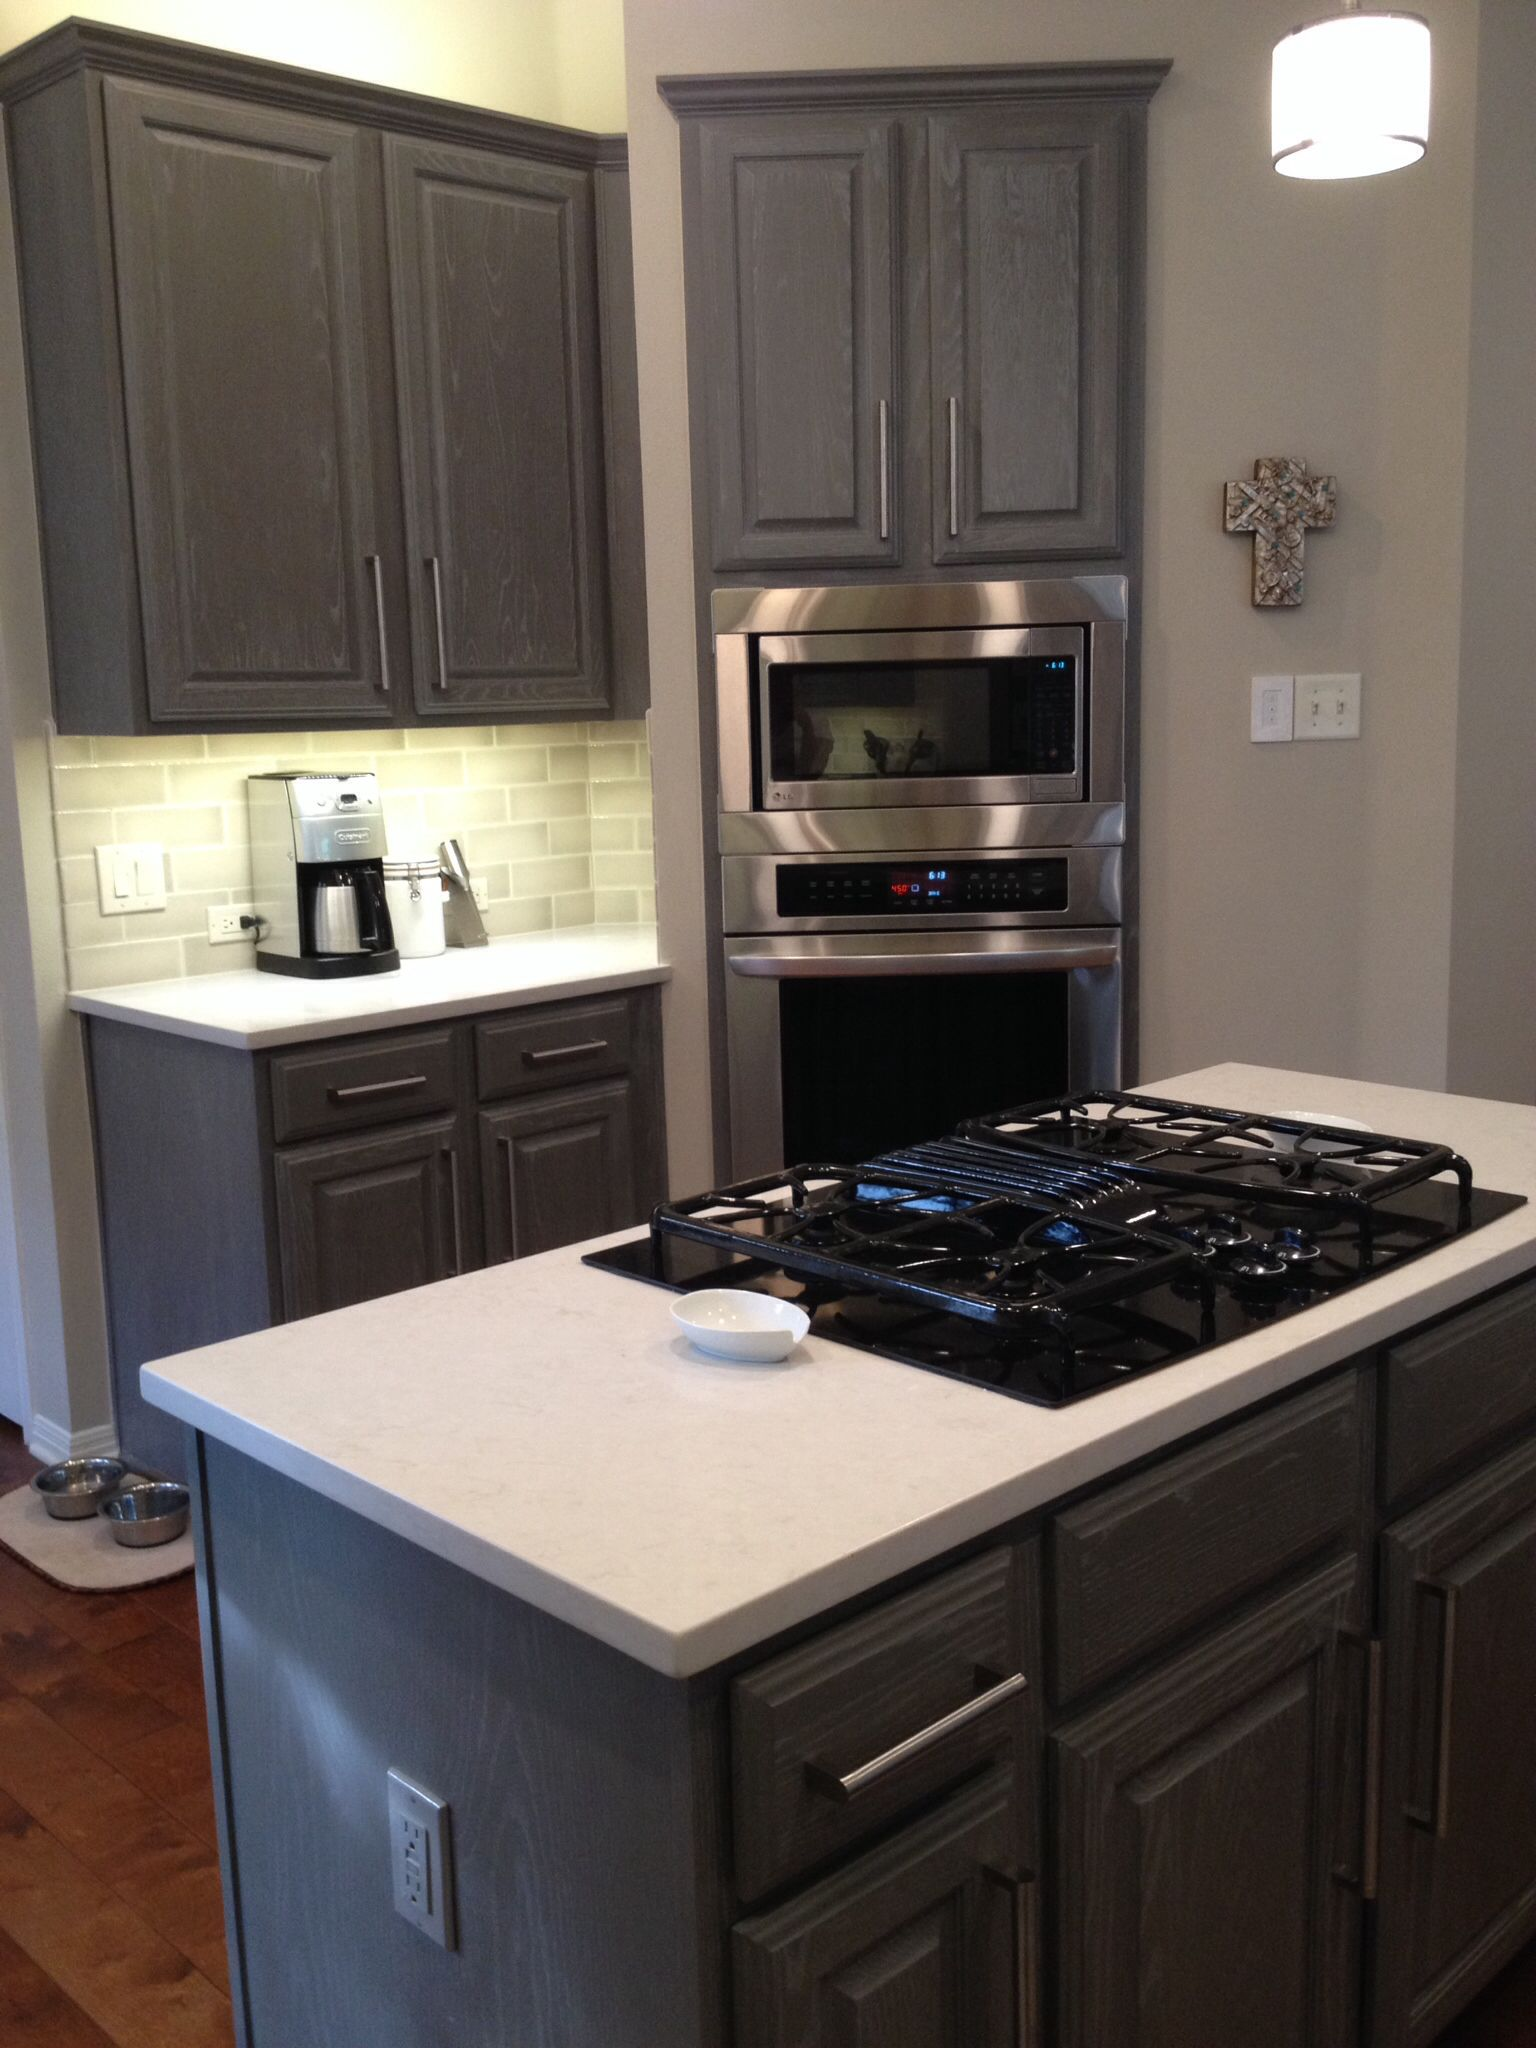 Coffee Color Kitchen Cabinets Fixtures Lowes Bar Sherwin Williams Gauntlet Gray Sw7019